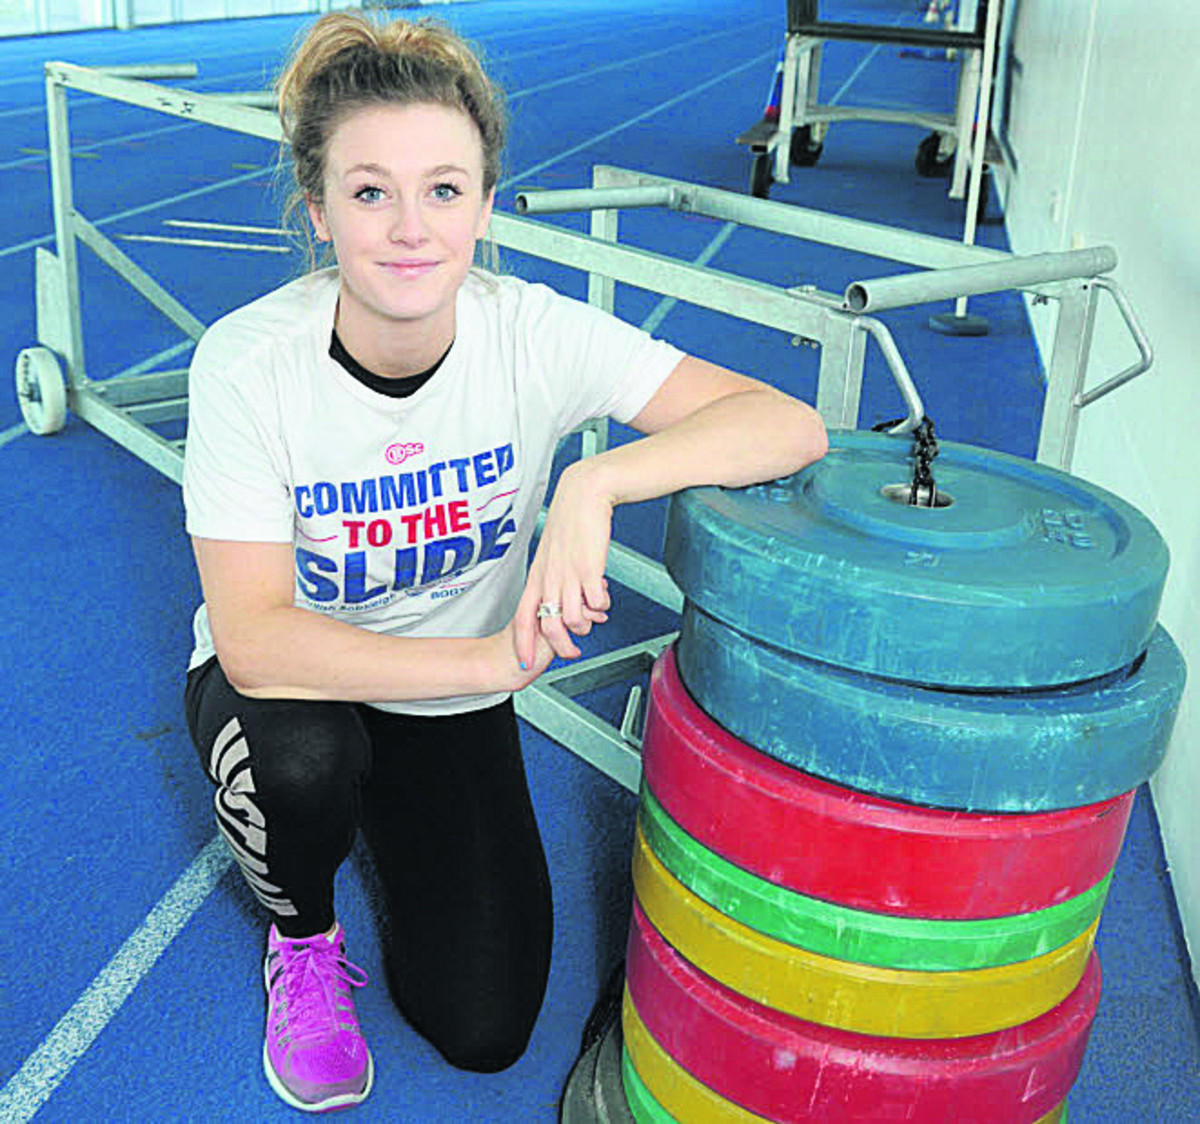 Anna Alexander-Holmes marked her competitive debut with a medal today